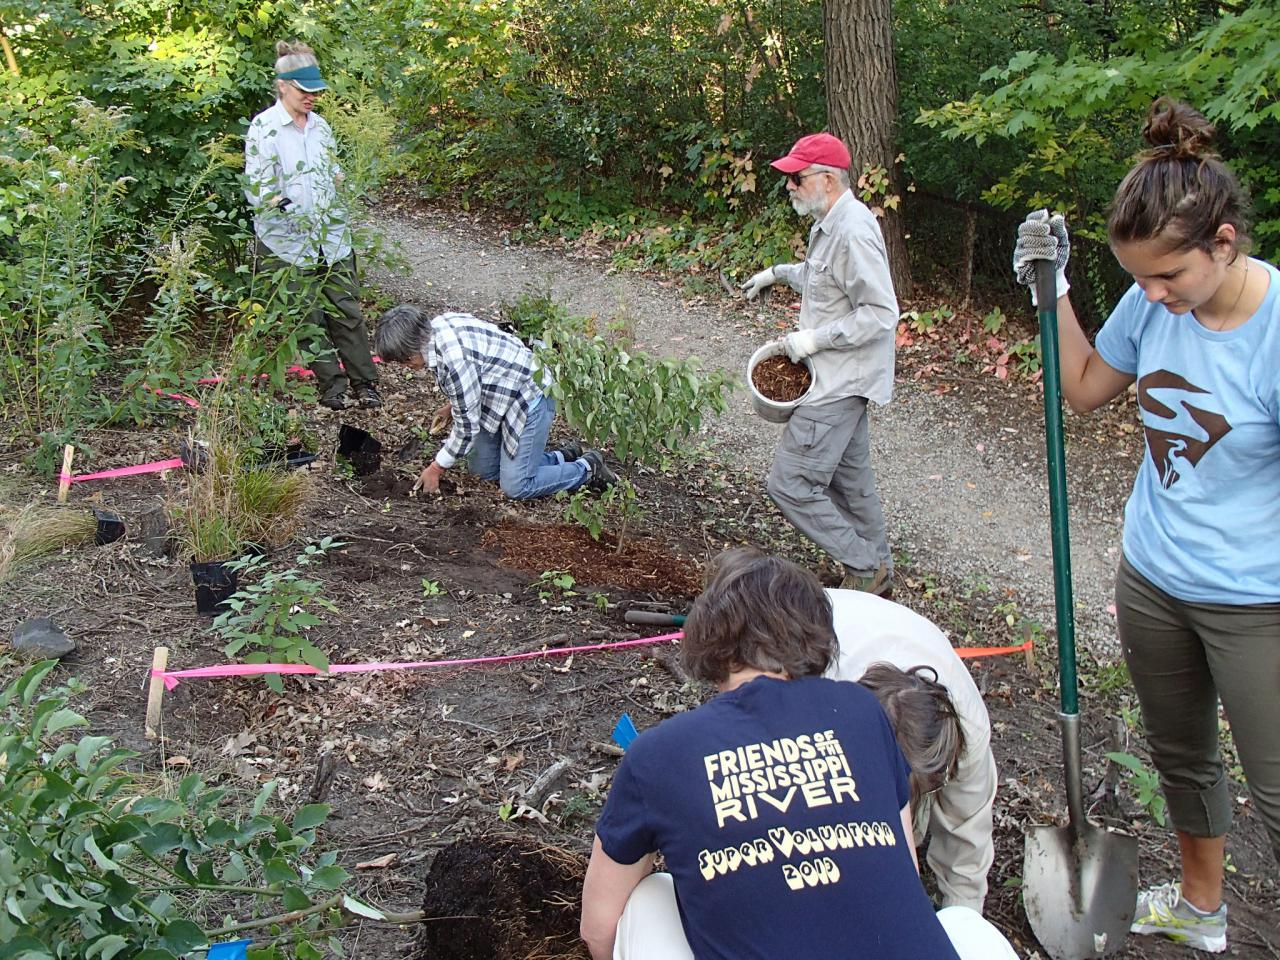 FMR Super Volunteers planting shrubs and forbs at the river gorge